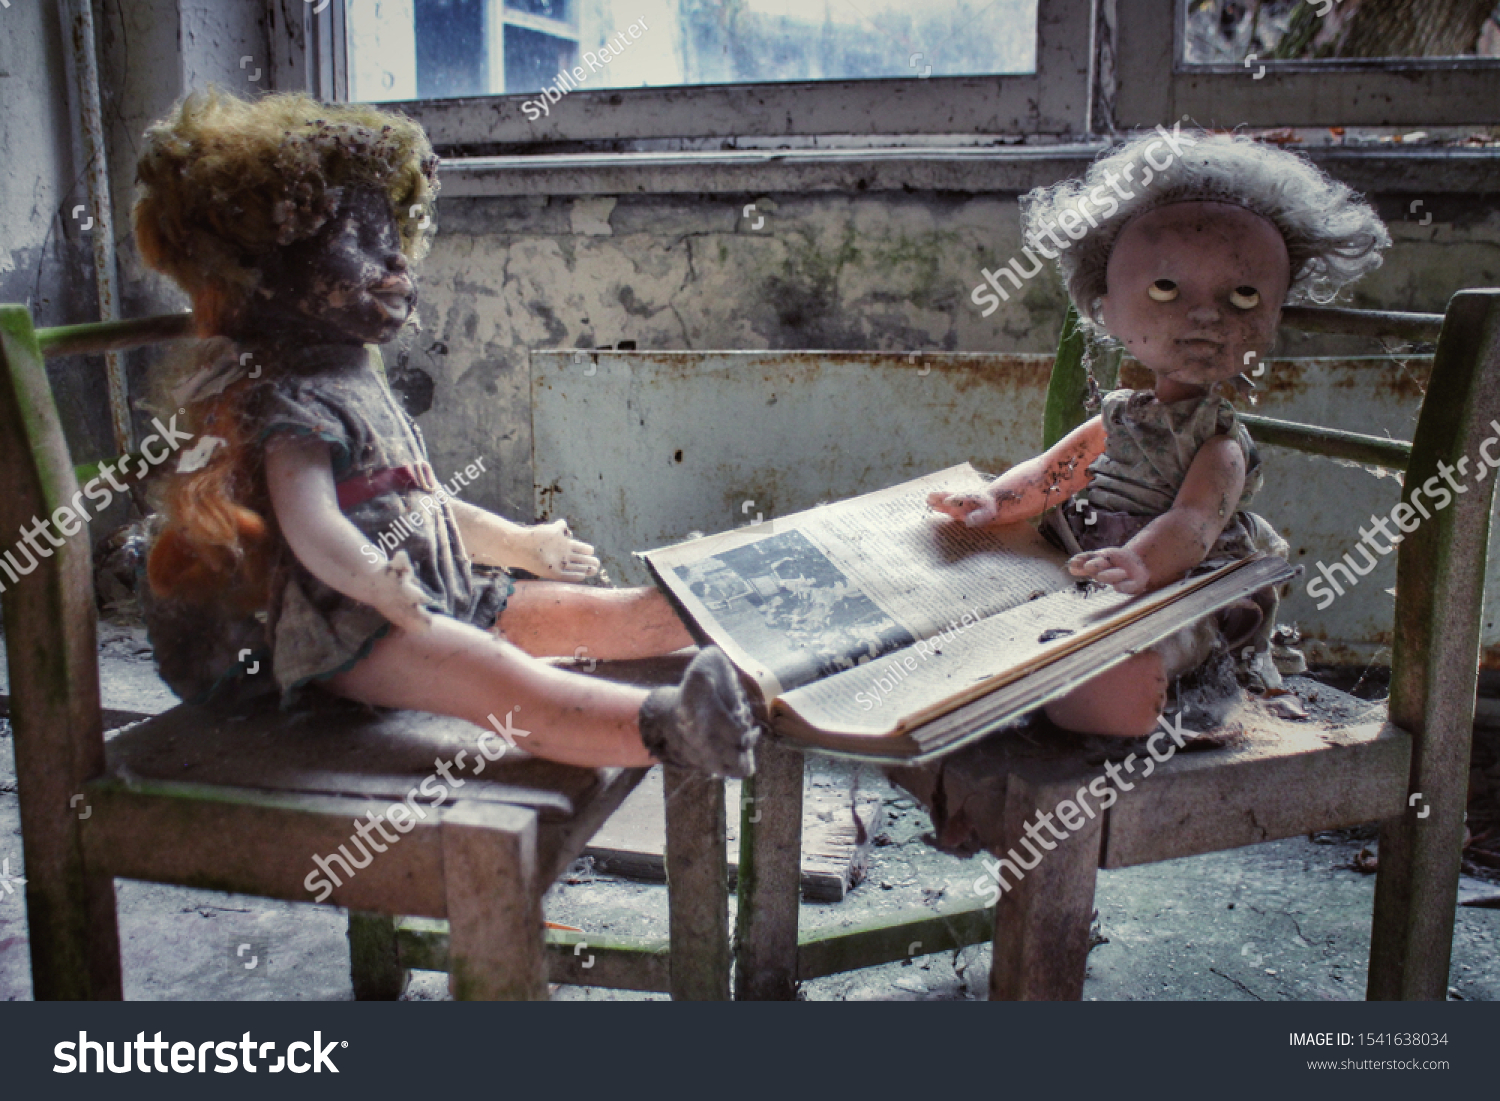 stock-photo-creepy-dolls-on-toy-chairs-w